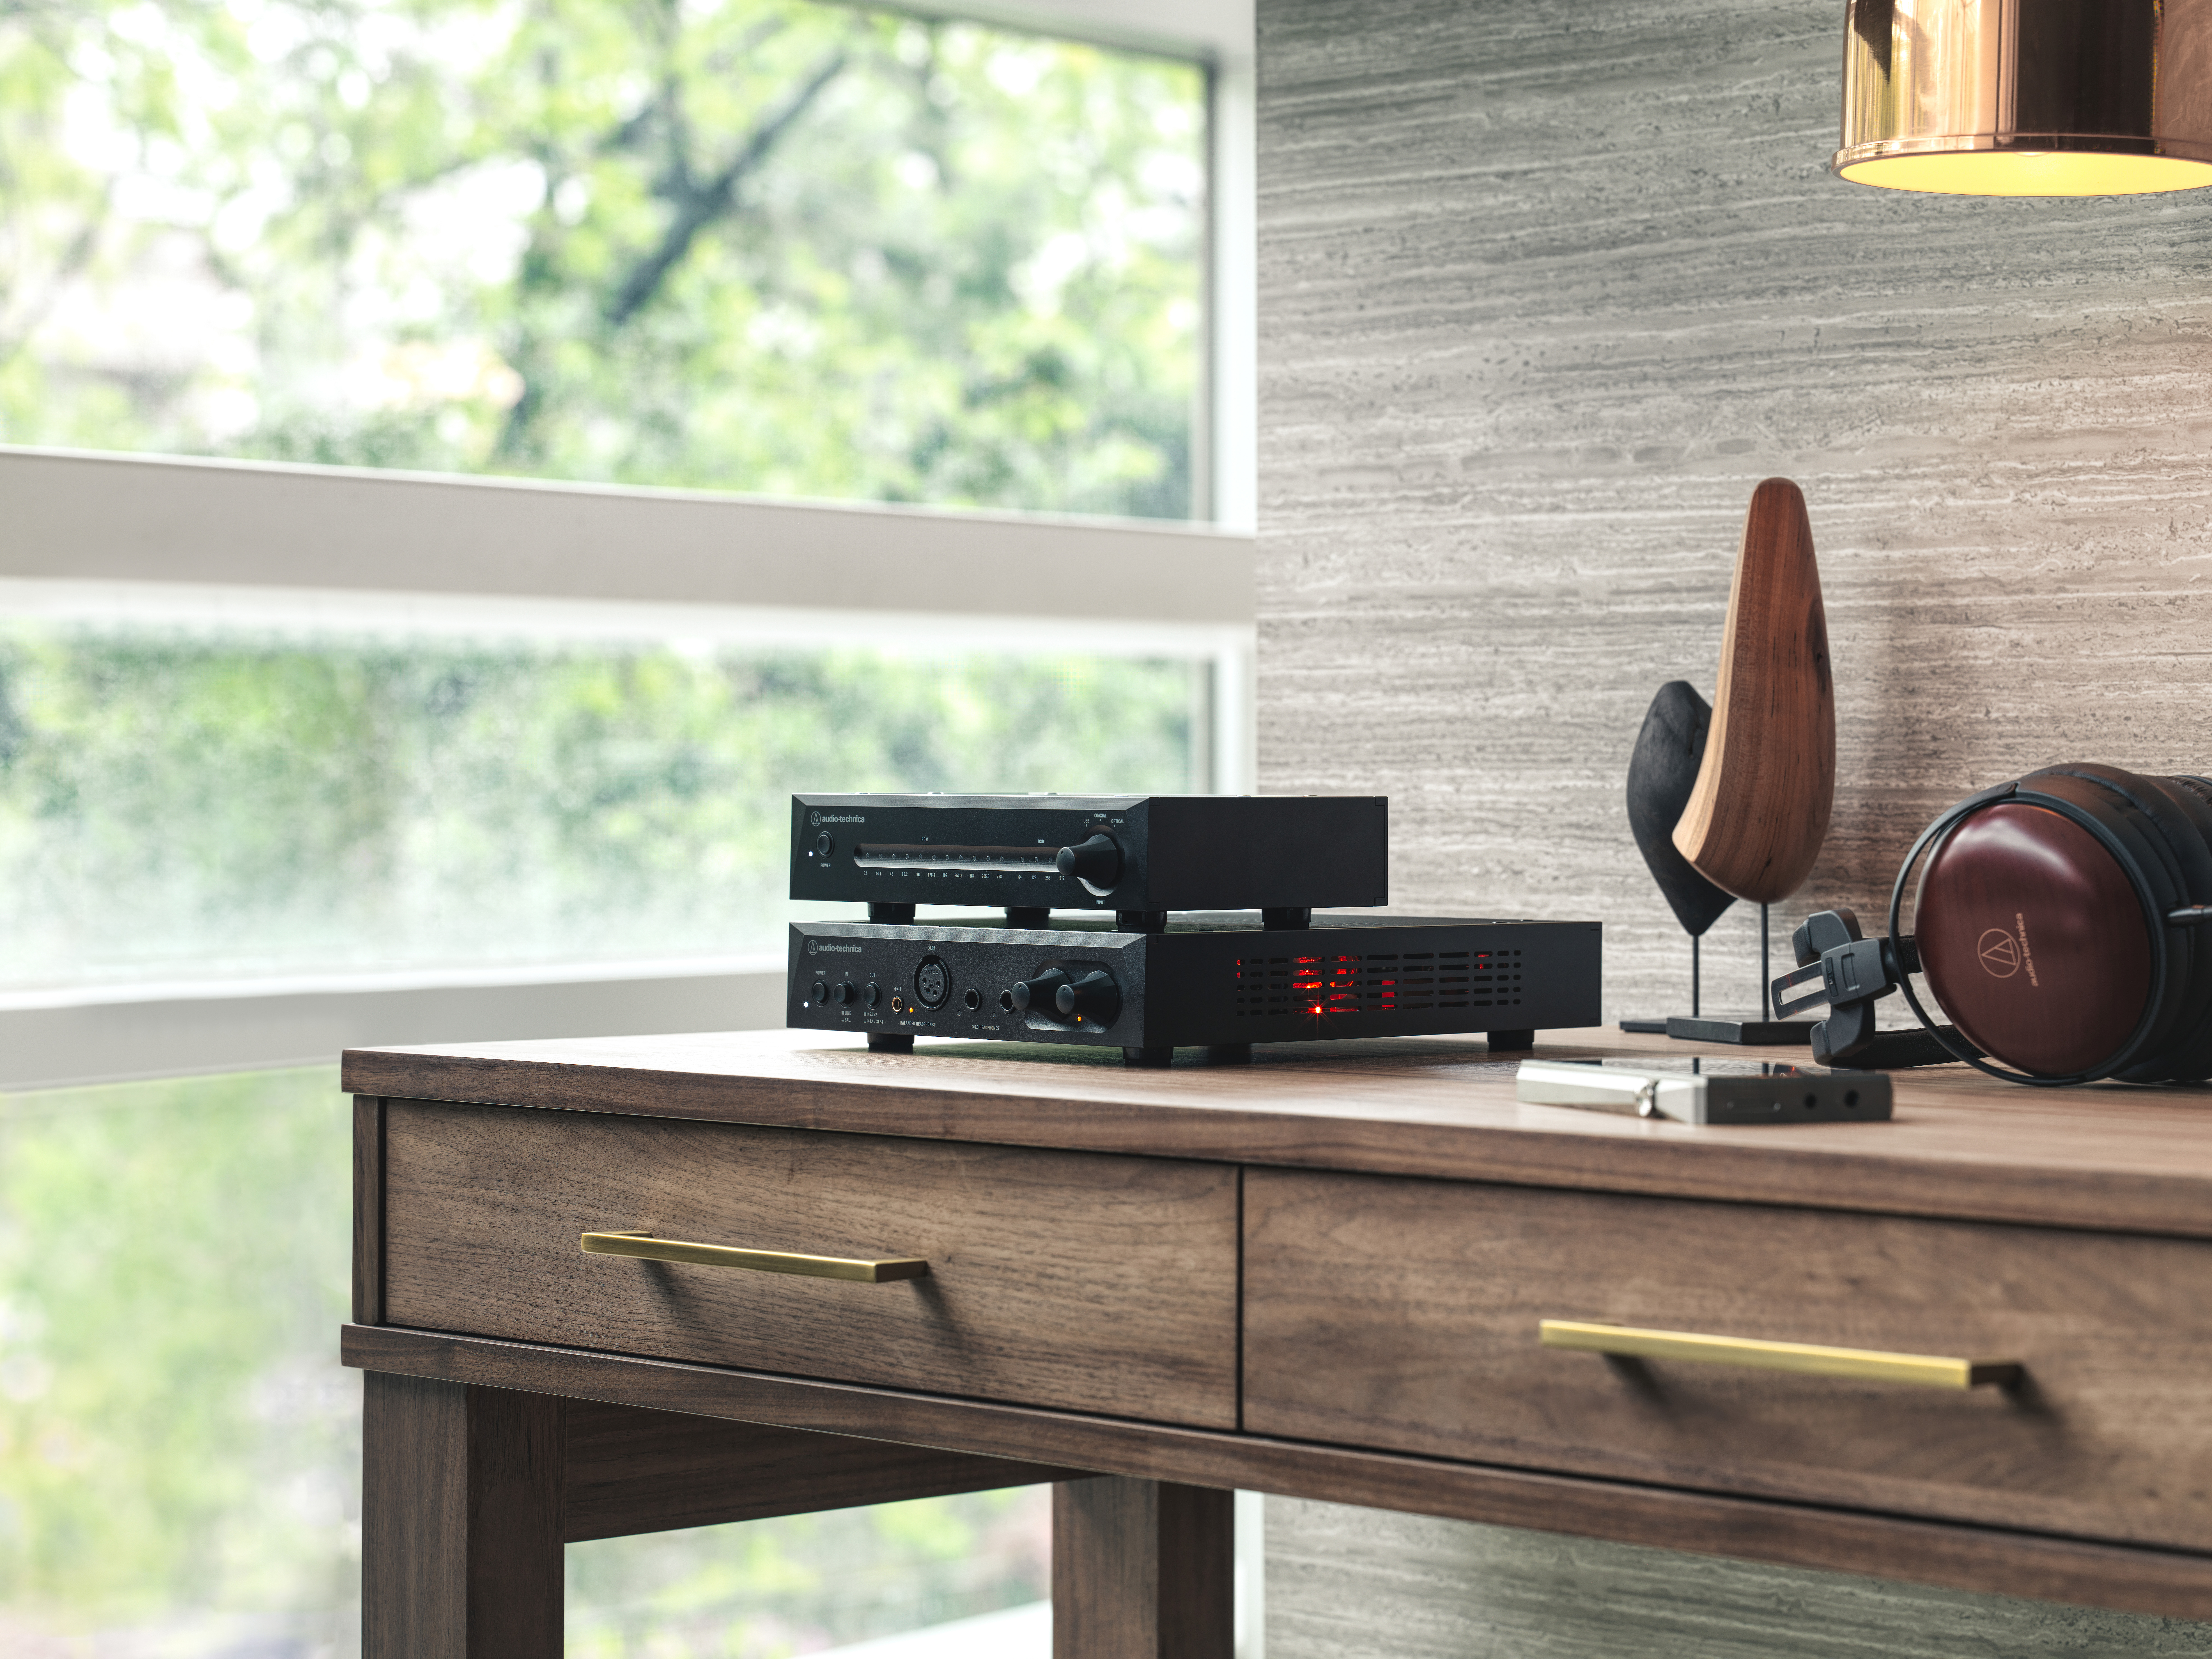 Audio-Technica's Releases New Digital-To-Analog Converter, AT- DAC100